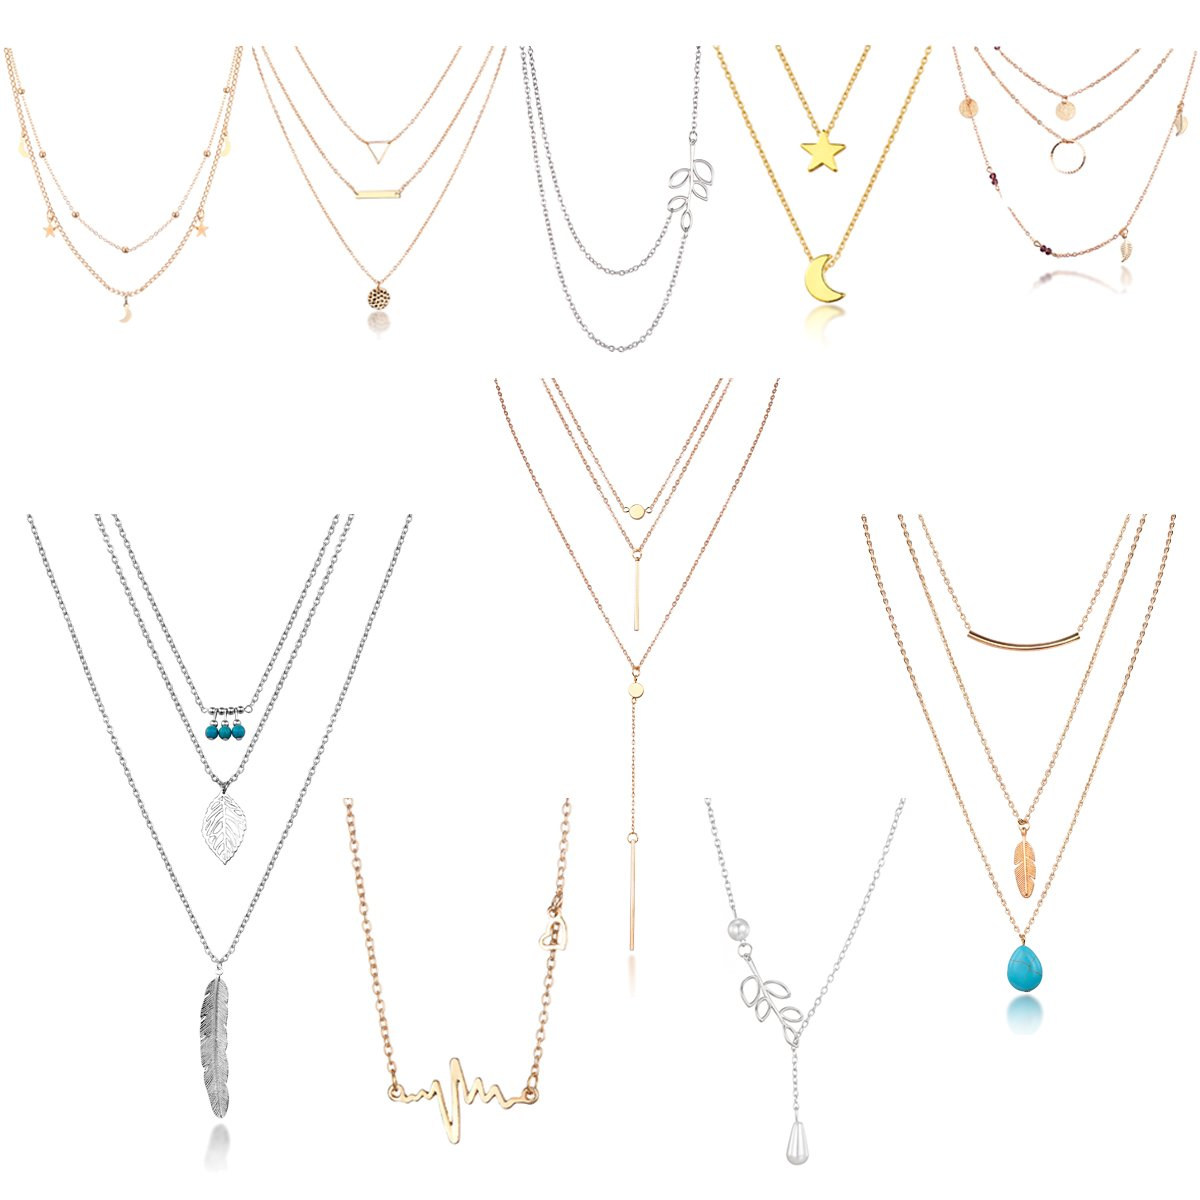 HYZ Pack of 10 Boho Layered Necklace Pendant Moon Star Turquoise Feather Olive Leaf Heartbeat Coin Chain Girls Women Jewelry Set luoyue B075PVY3S5_US